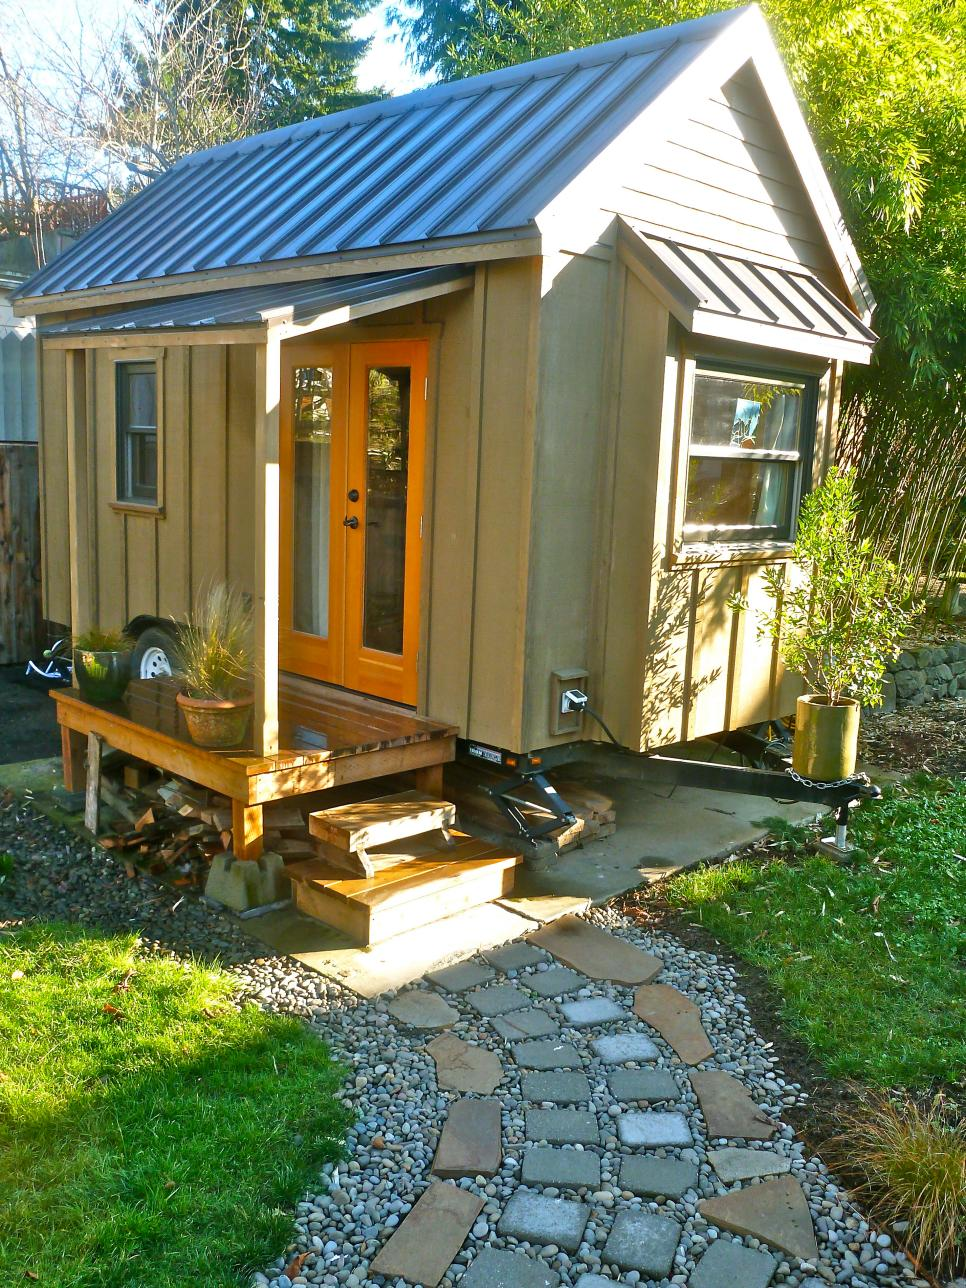 pictures of 10 extreme tiny homes from hgtv remodels hgtv - Tiny House Inside